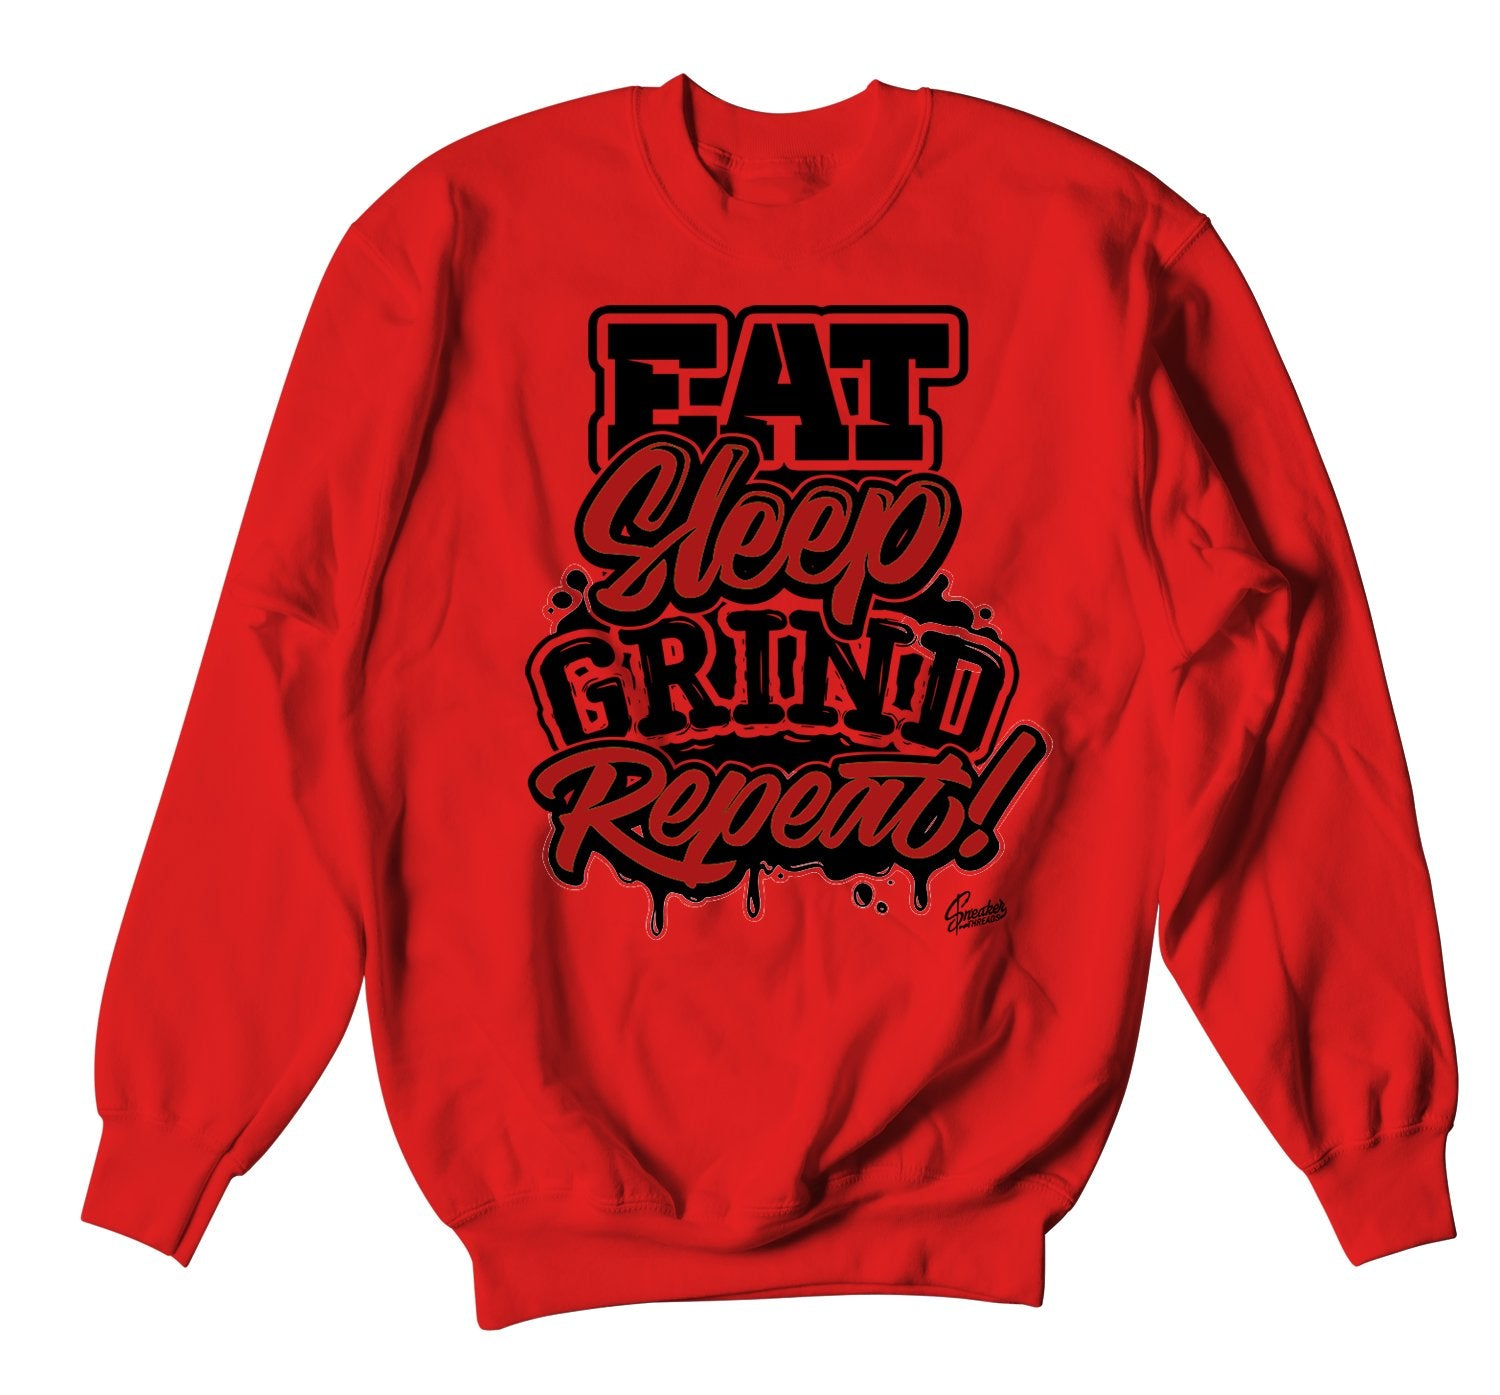 Red Freshest Grind Repeat Sweater for Red Carpet 17